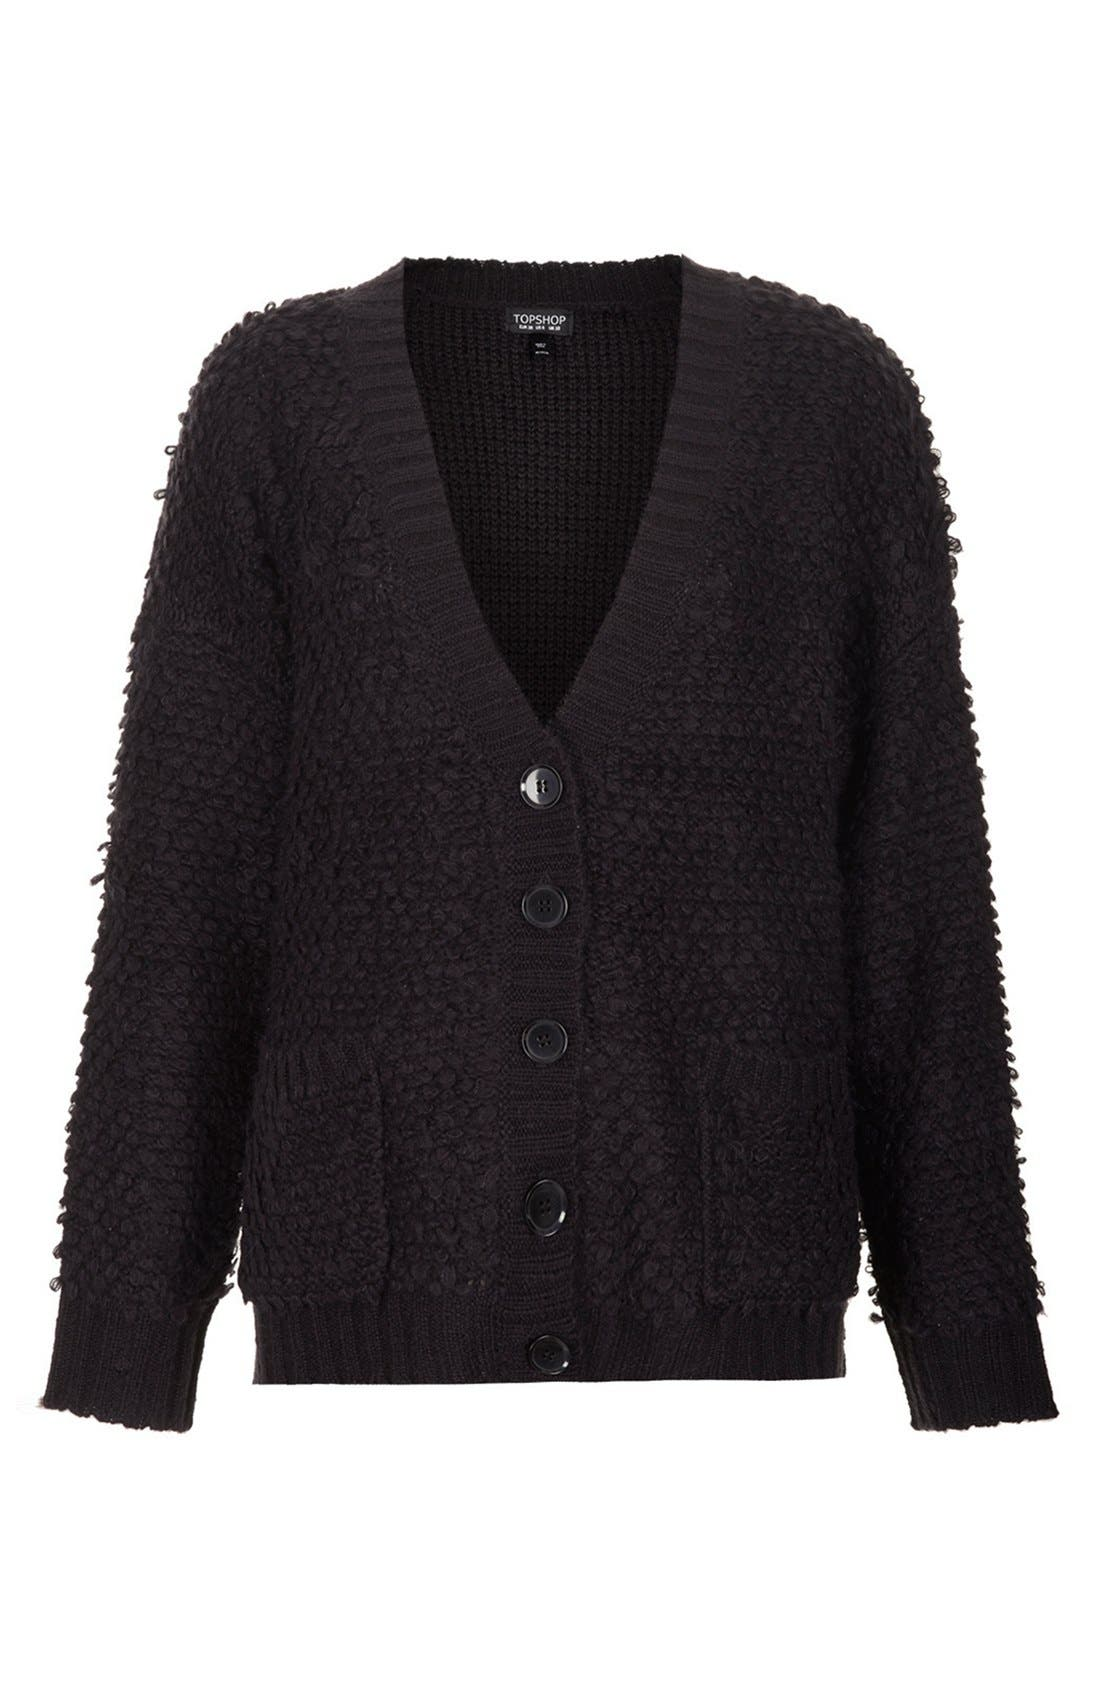 Alternate Image 3  - Topshop 'Hold Loopy' Textured Knit Cardigan